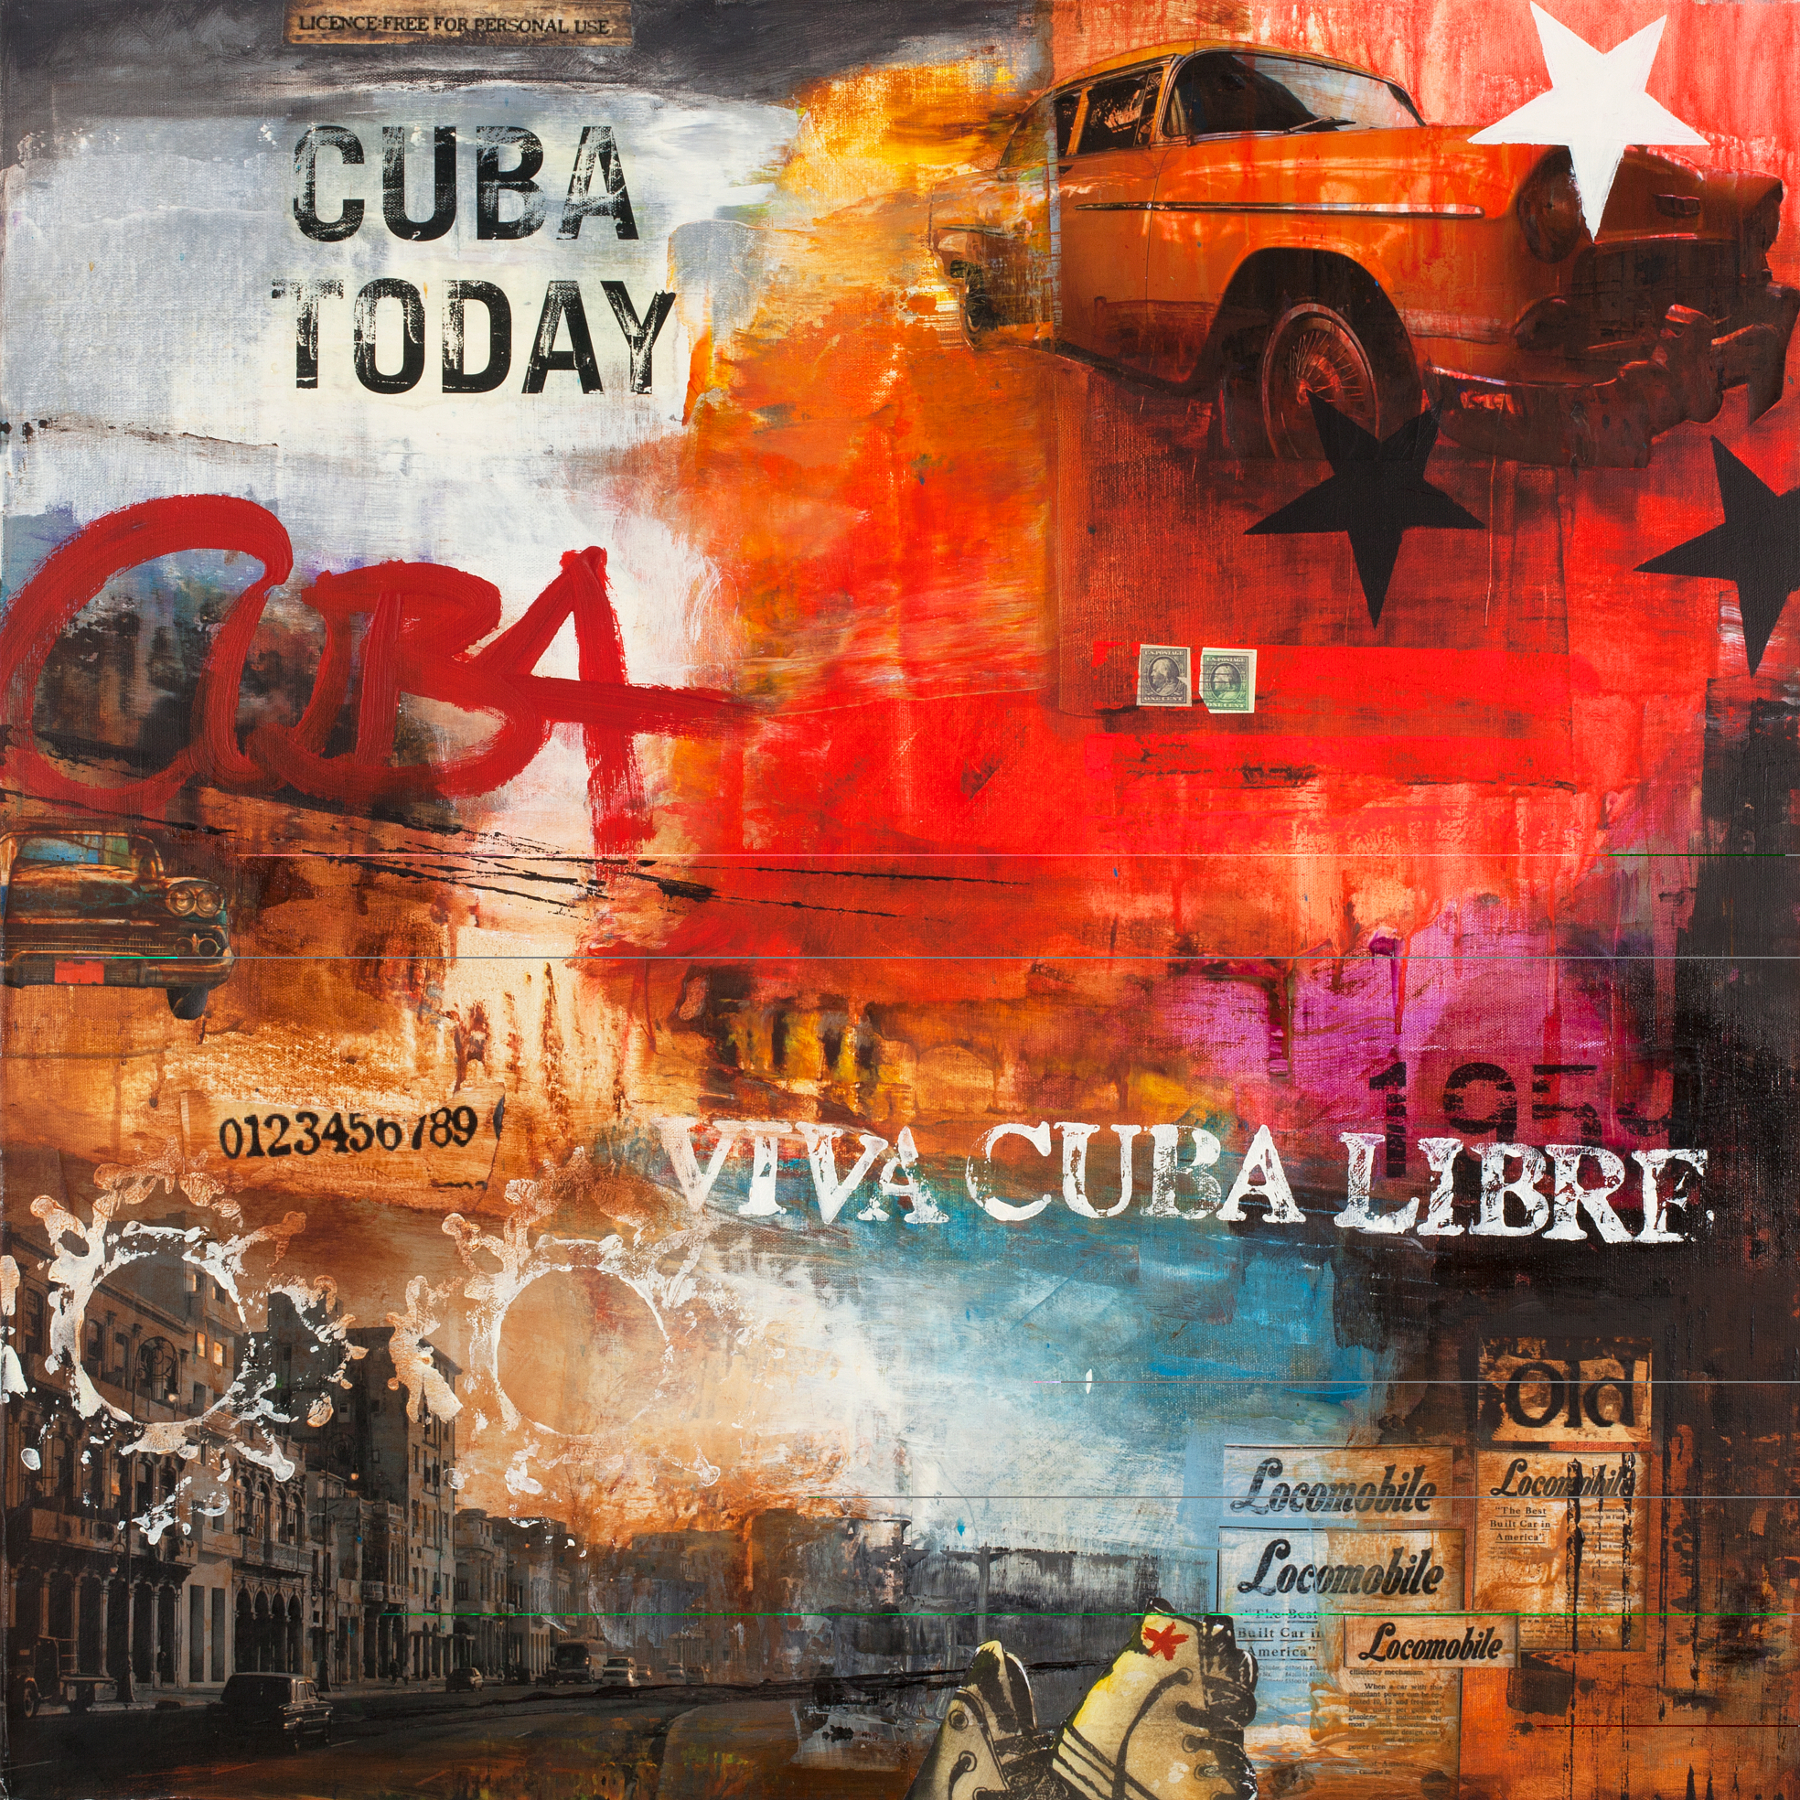 CUBA TODAY - Printed Wall Deco - 100 x 100 cm